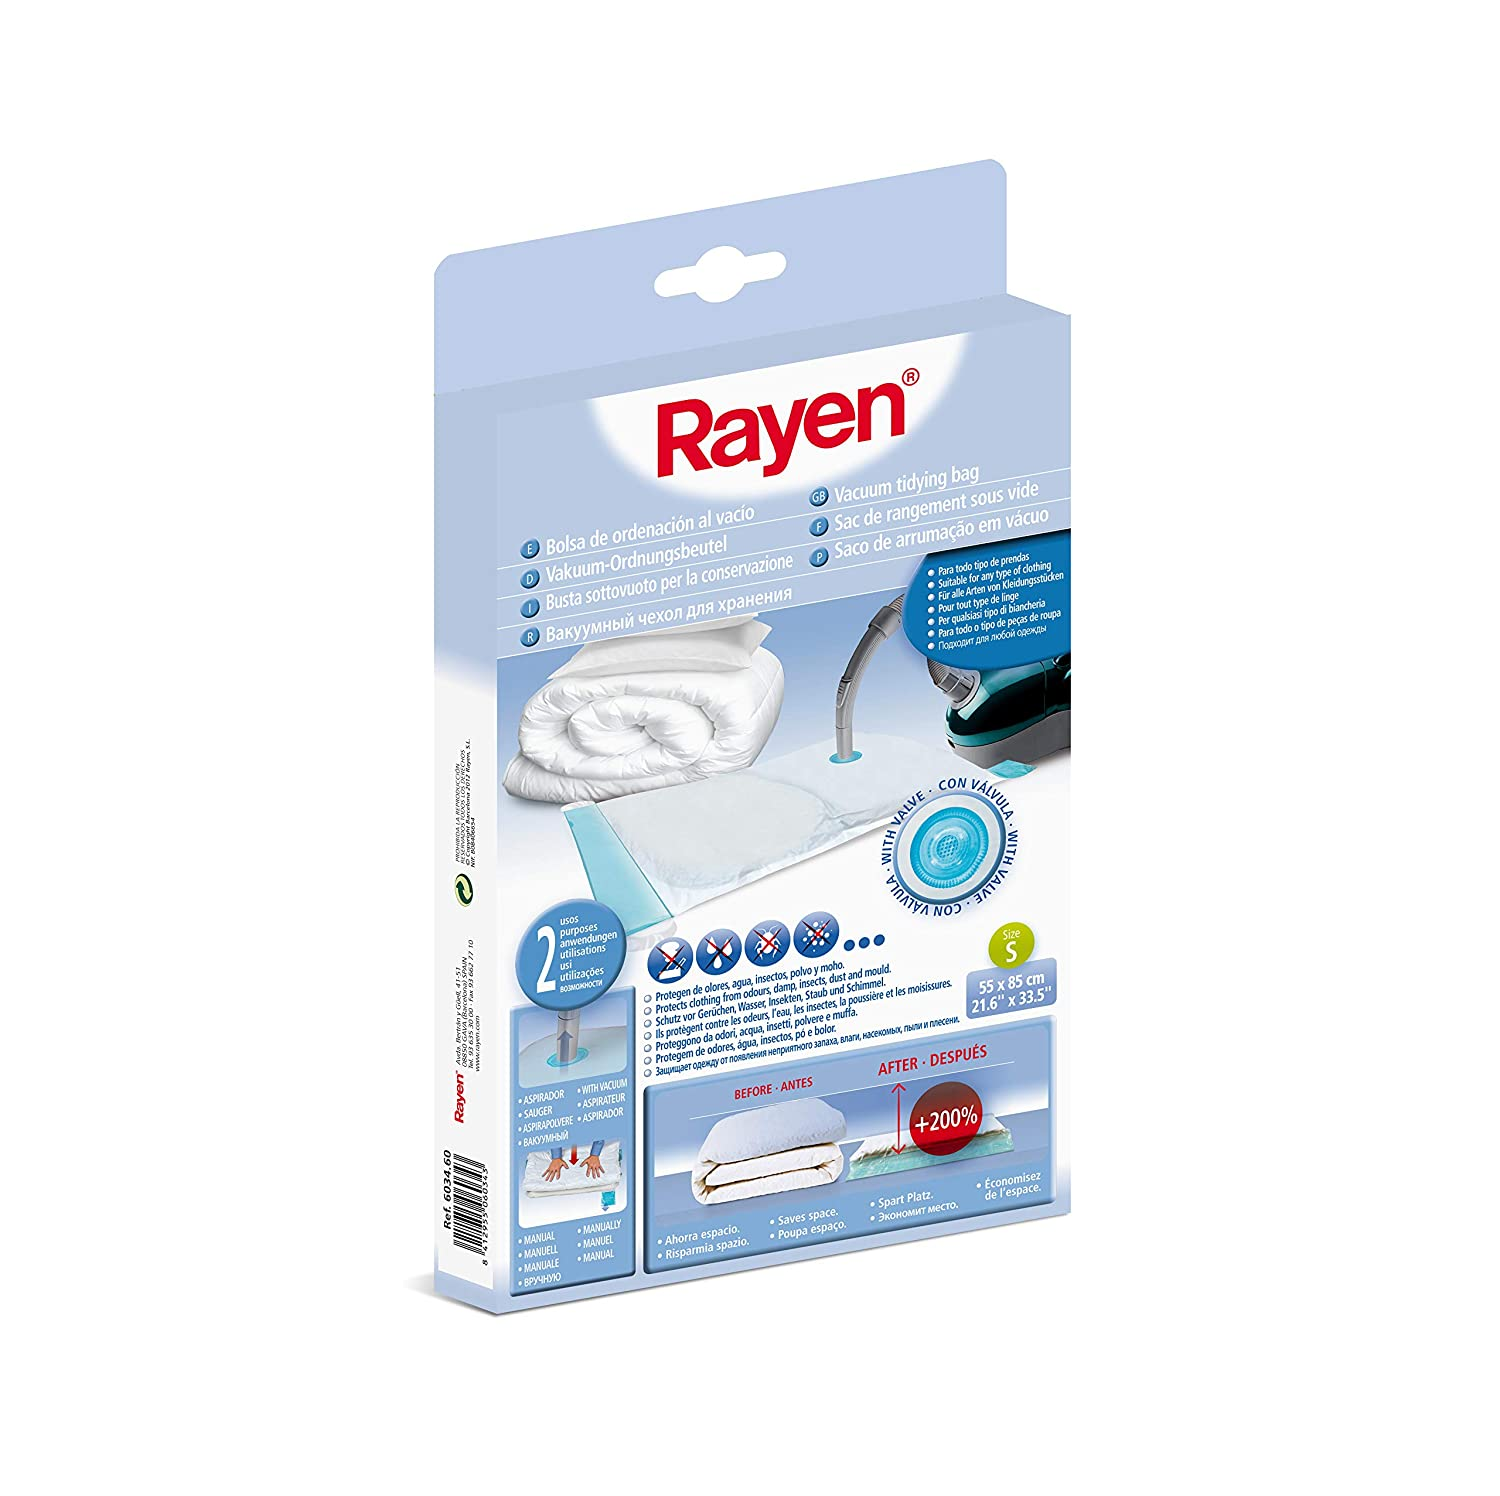 Amazon.com: RAYEN 6034.60 21.6 by 33.5-Inch Vacuum Bags ...